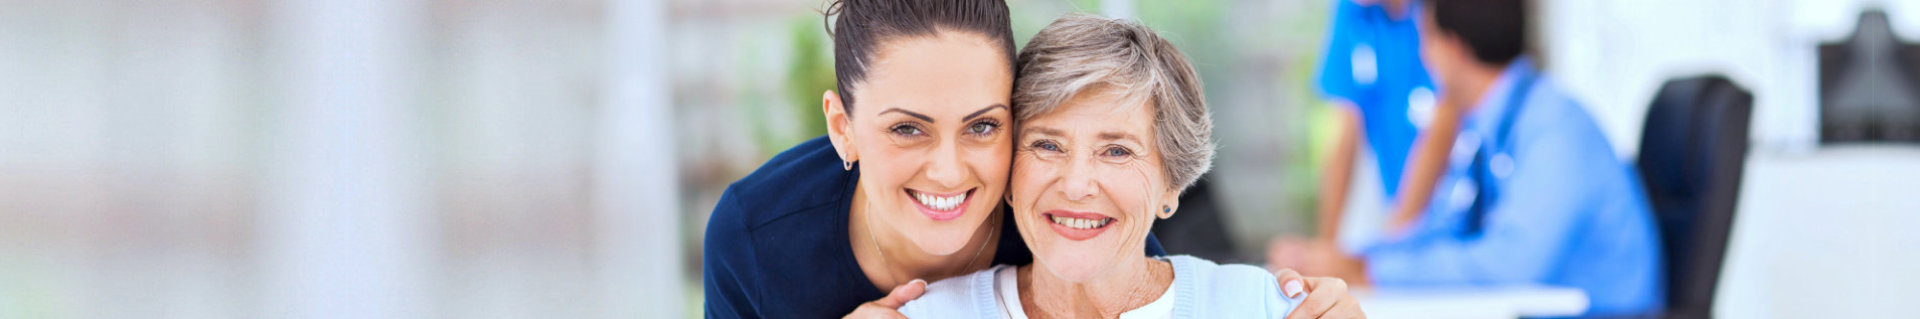 an elderly woman and a caregiver smiling together in front of the camera